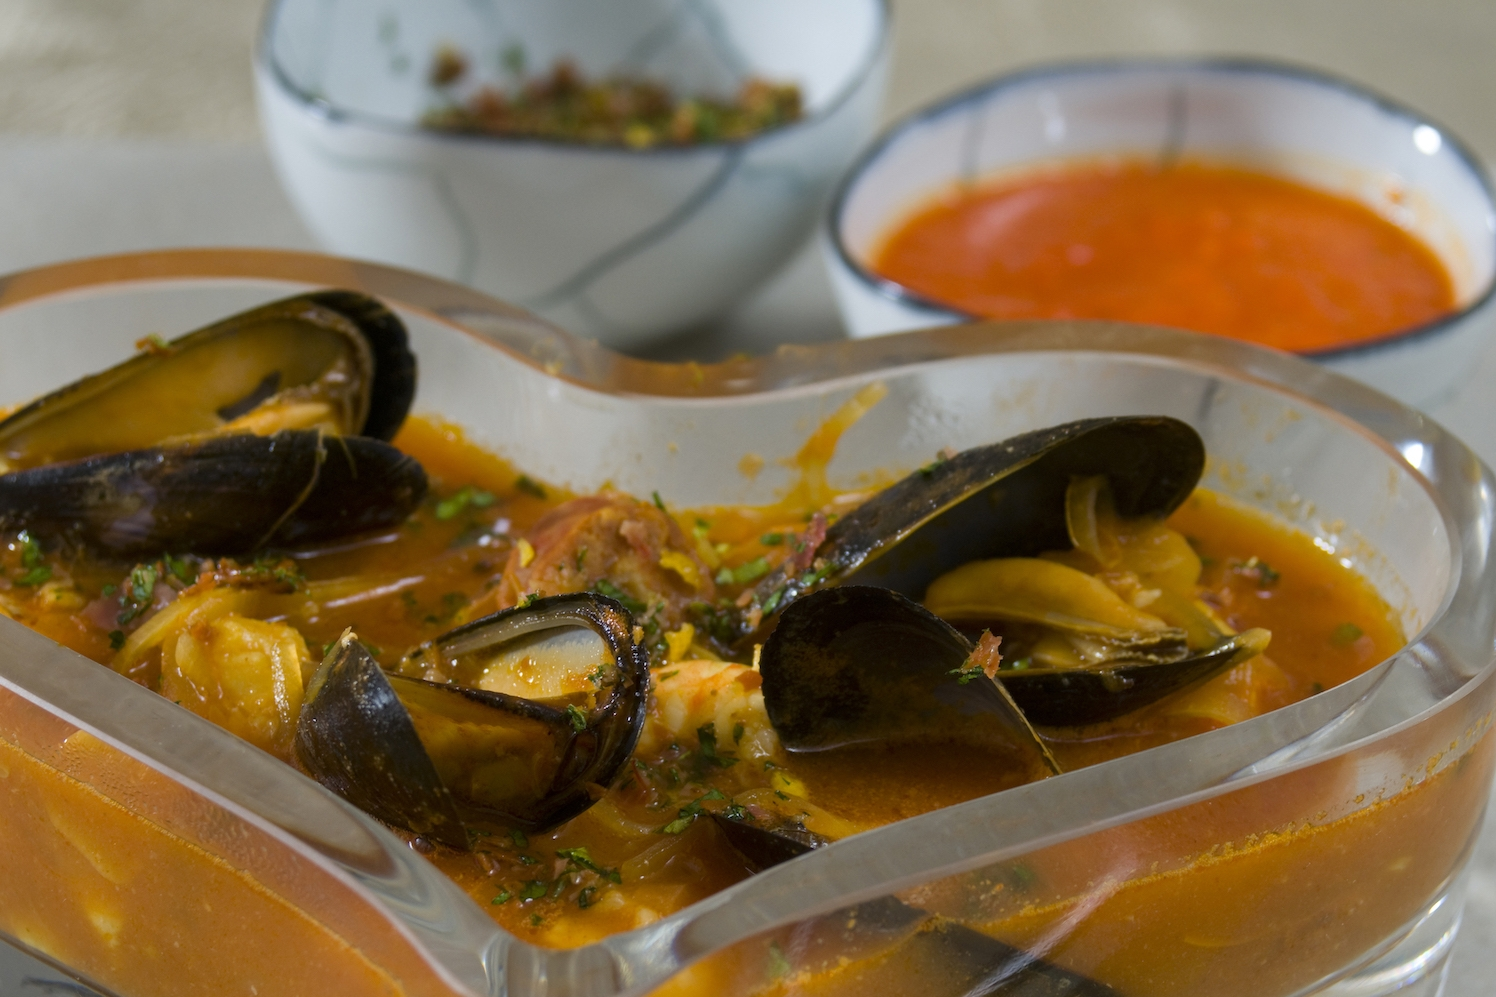 cataplana - with thanks to my portuguese cooking heroes! -